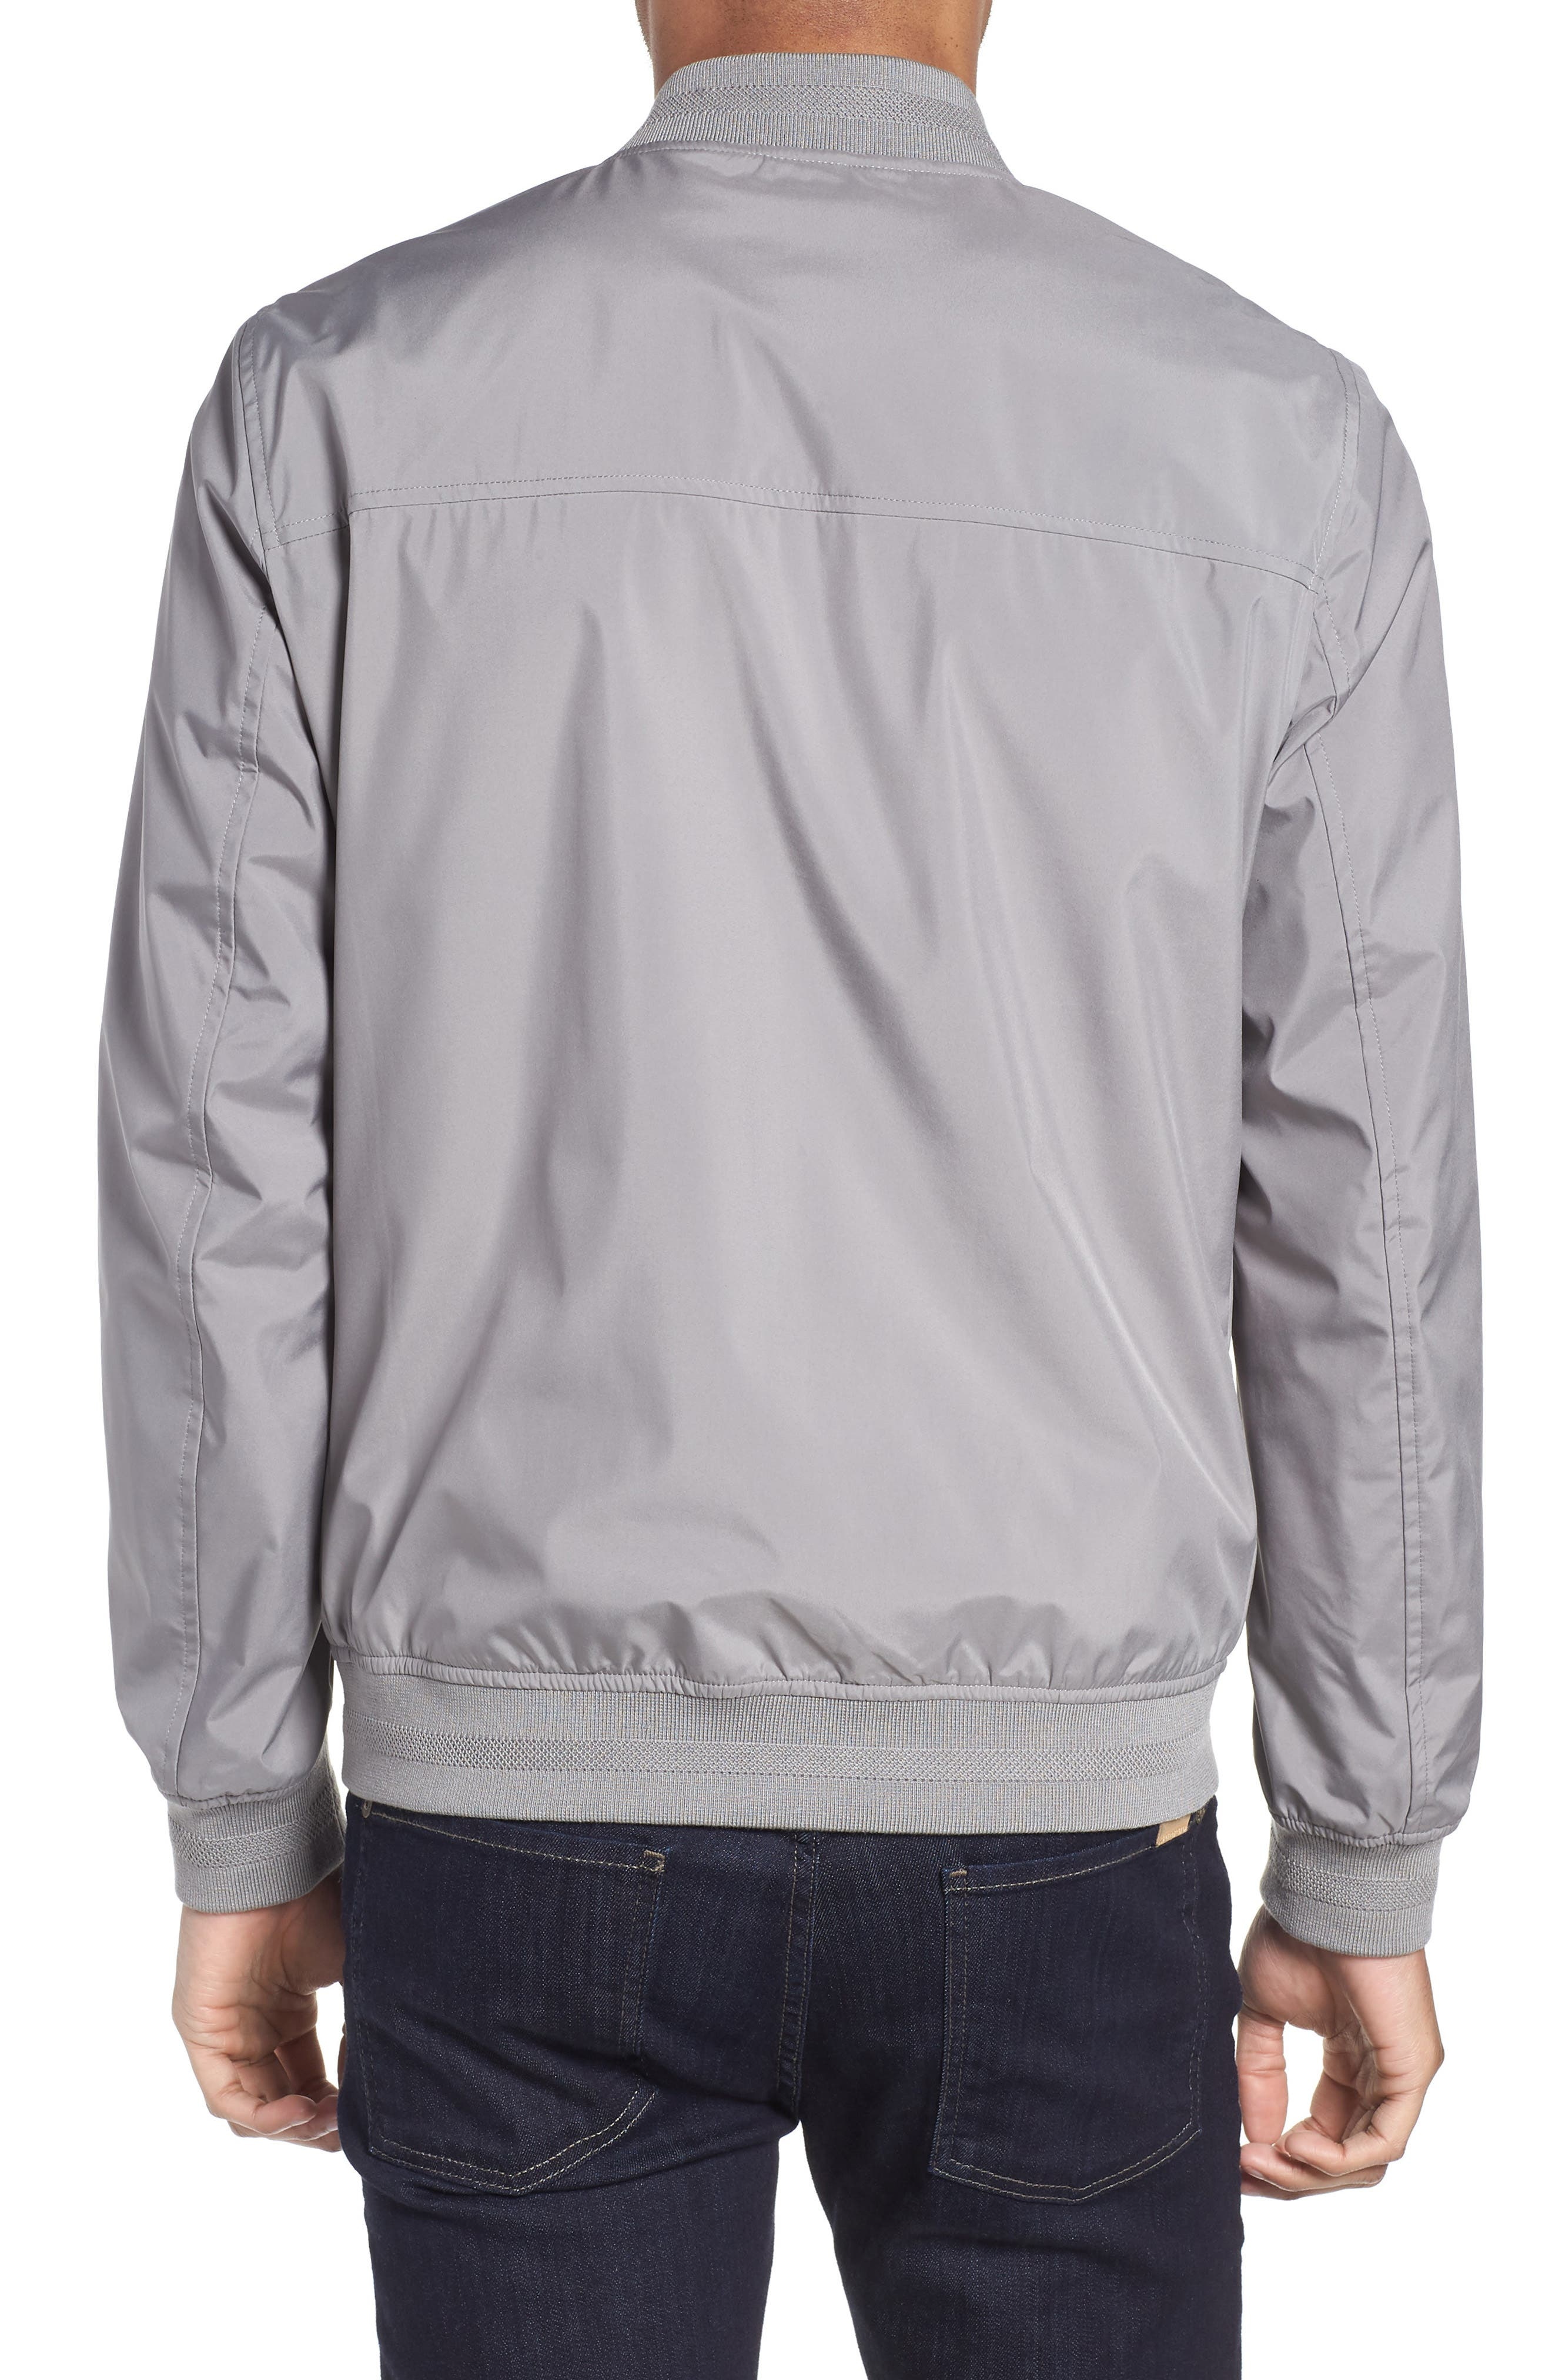 Ohtatt Bomber Jacket,                             Alternate thumbnail 2, color,                             050